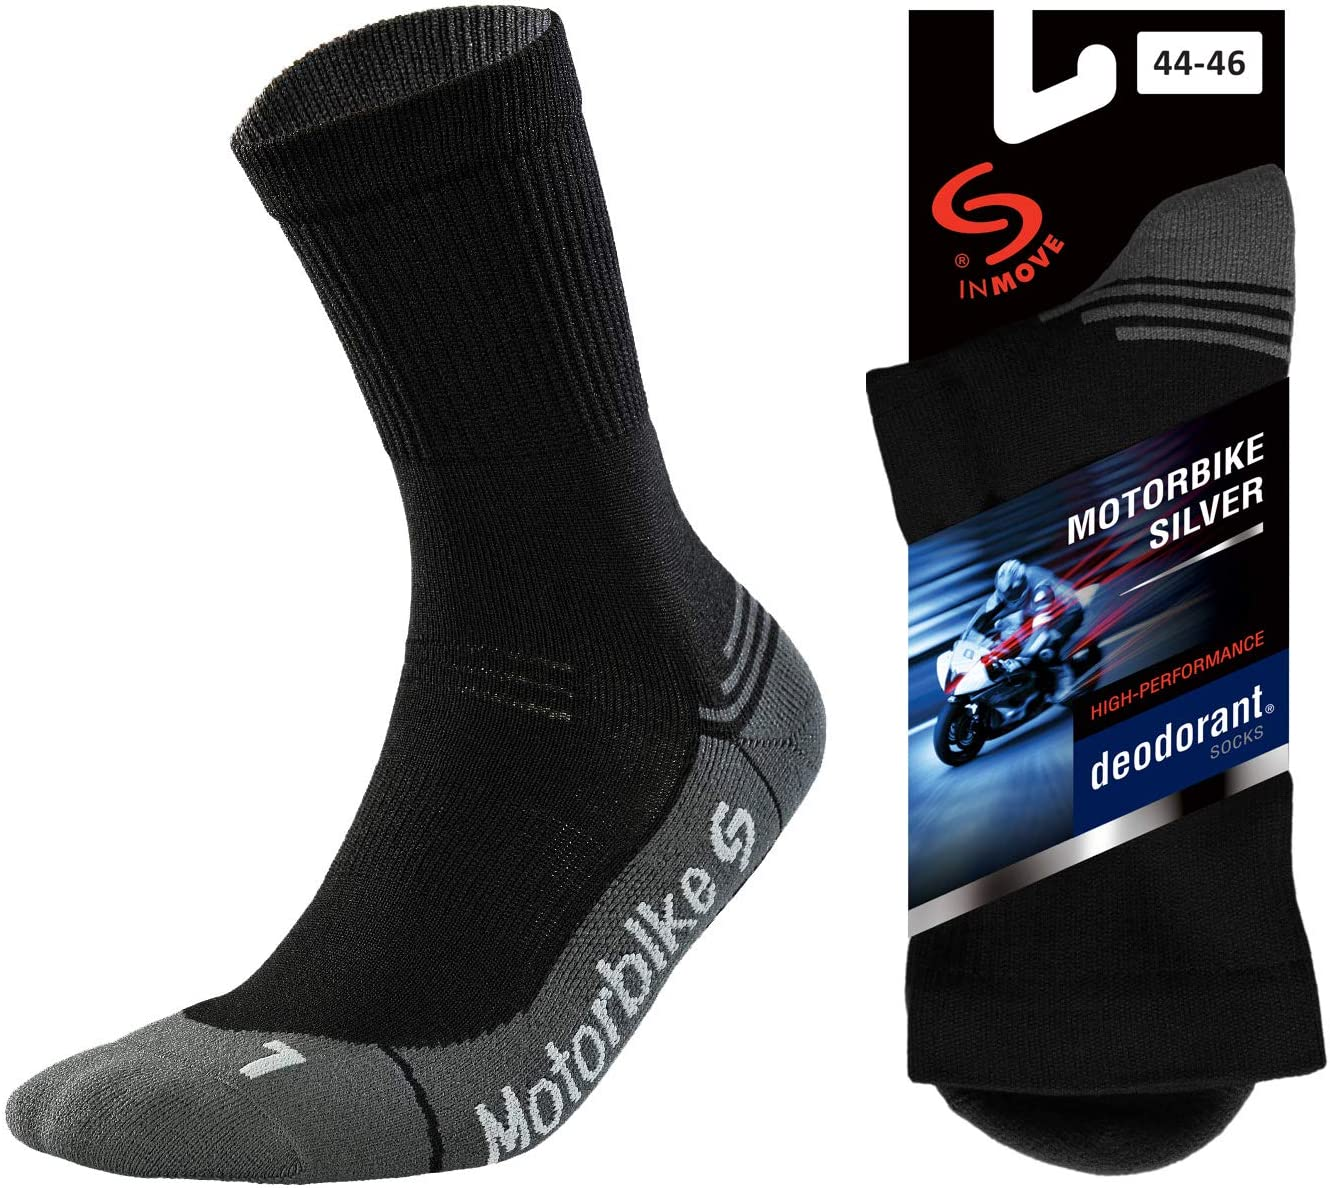 7-9, 1 pair - Black TODO Motorbike Socks for Men Light Breathable Calf Motorcycle Socks with Silver